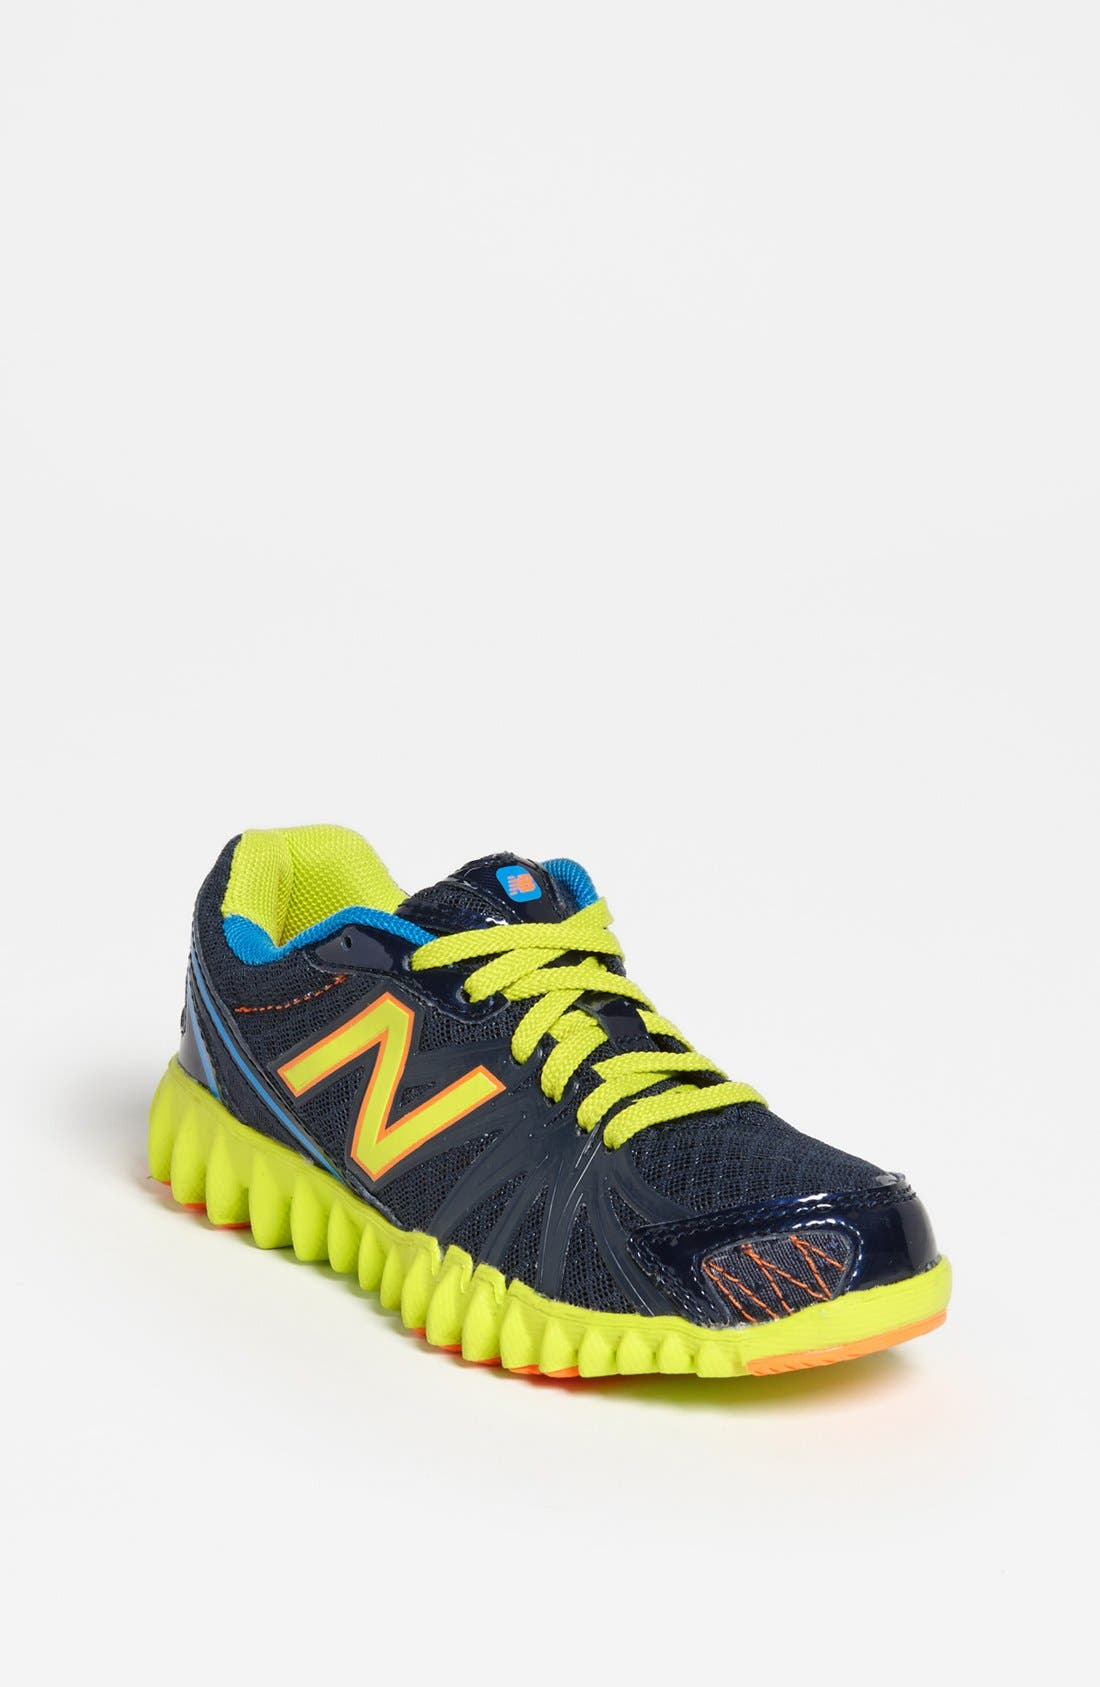 Alternate Image 1 Selected - New Balance 'Takedown 2750' Running Shoe (Toddler, Little Kid & Big Kid)